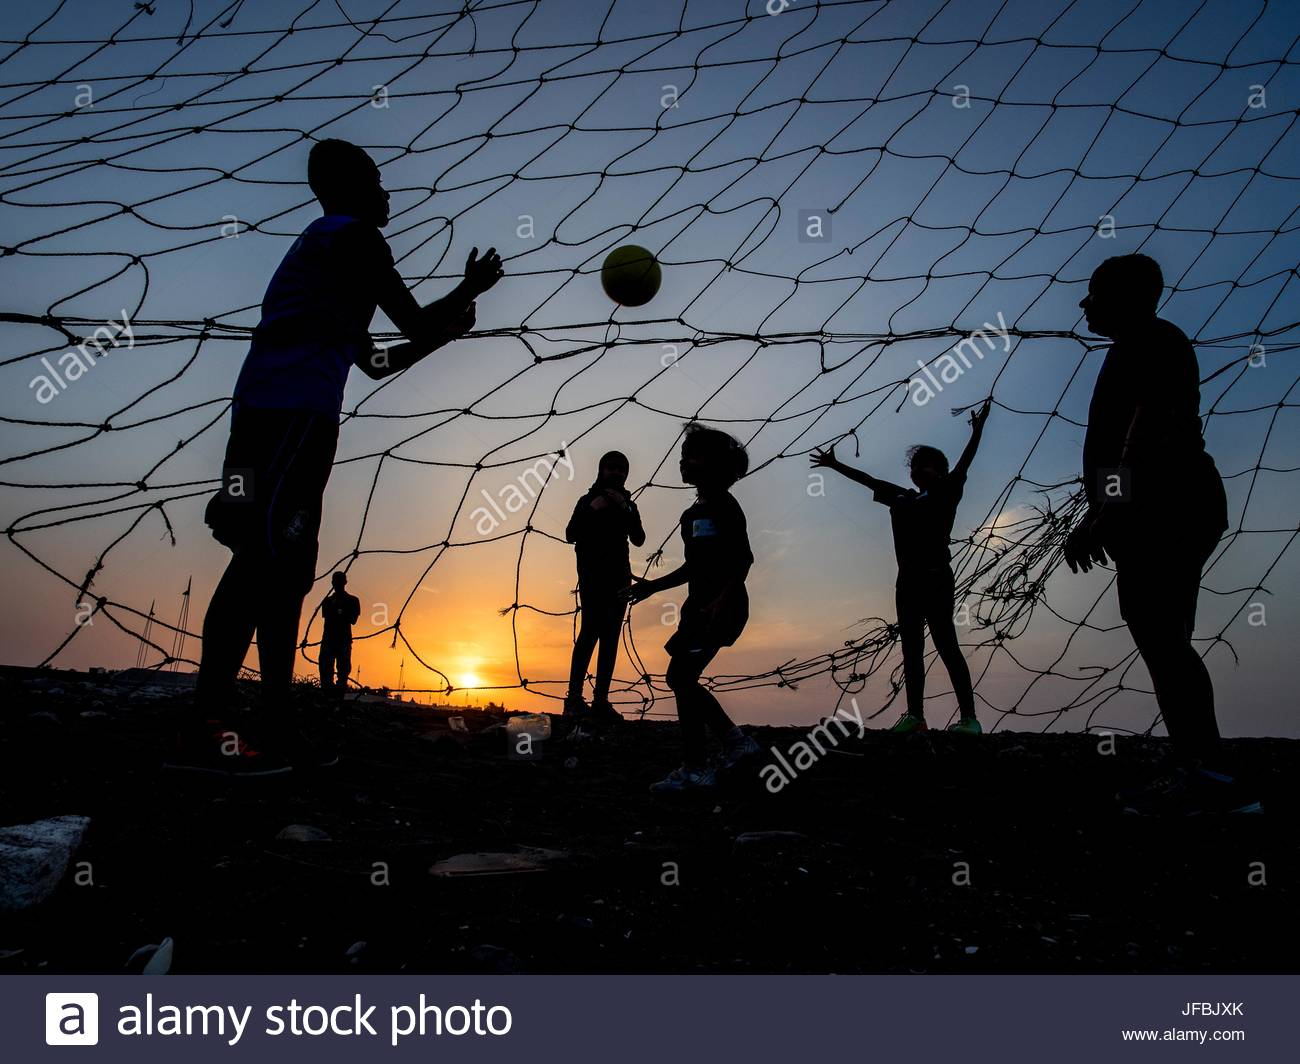 People playing soccer at sunset. - Stock Image